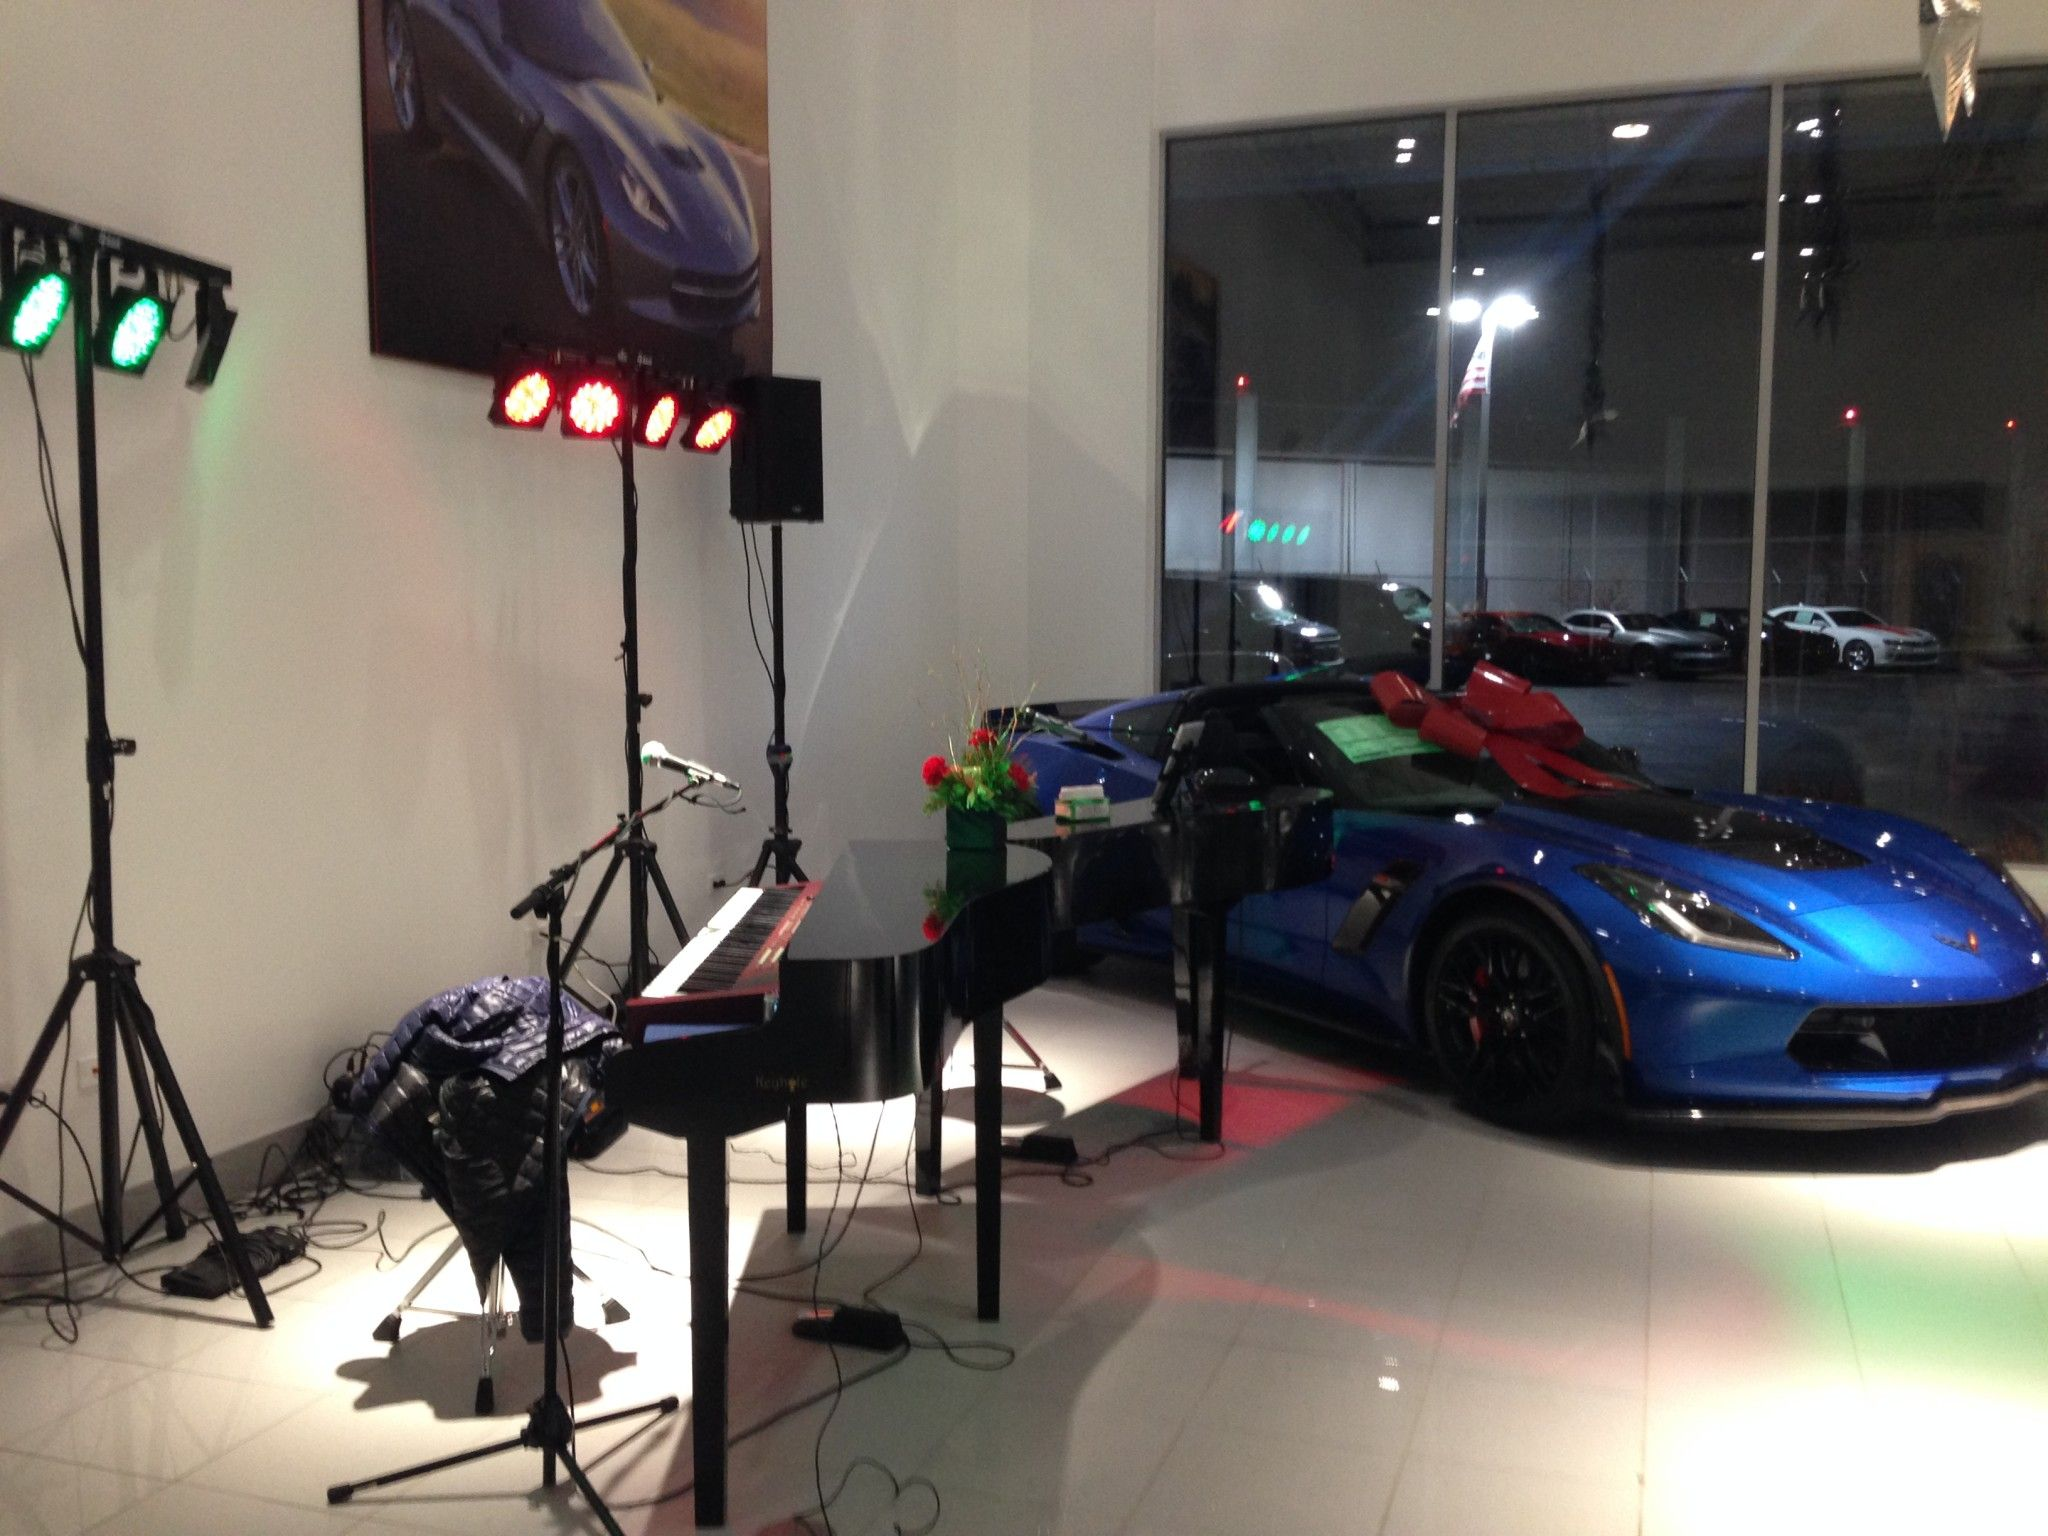 Wonderful Martin Chevrolet Of Crystal Lake, IL Held A Dual Holiday Party And Grand  Opening Event, And Robert And Emily Were Thrilled To Provide The  Entertainment!